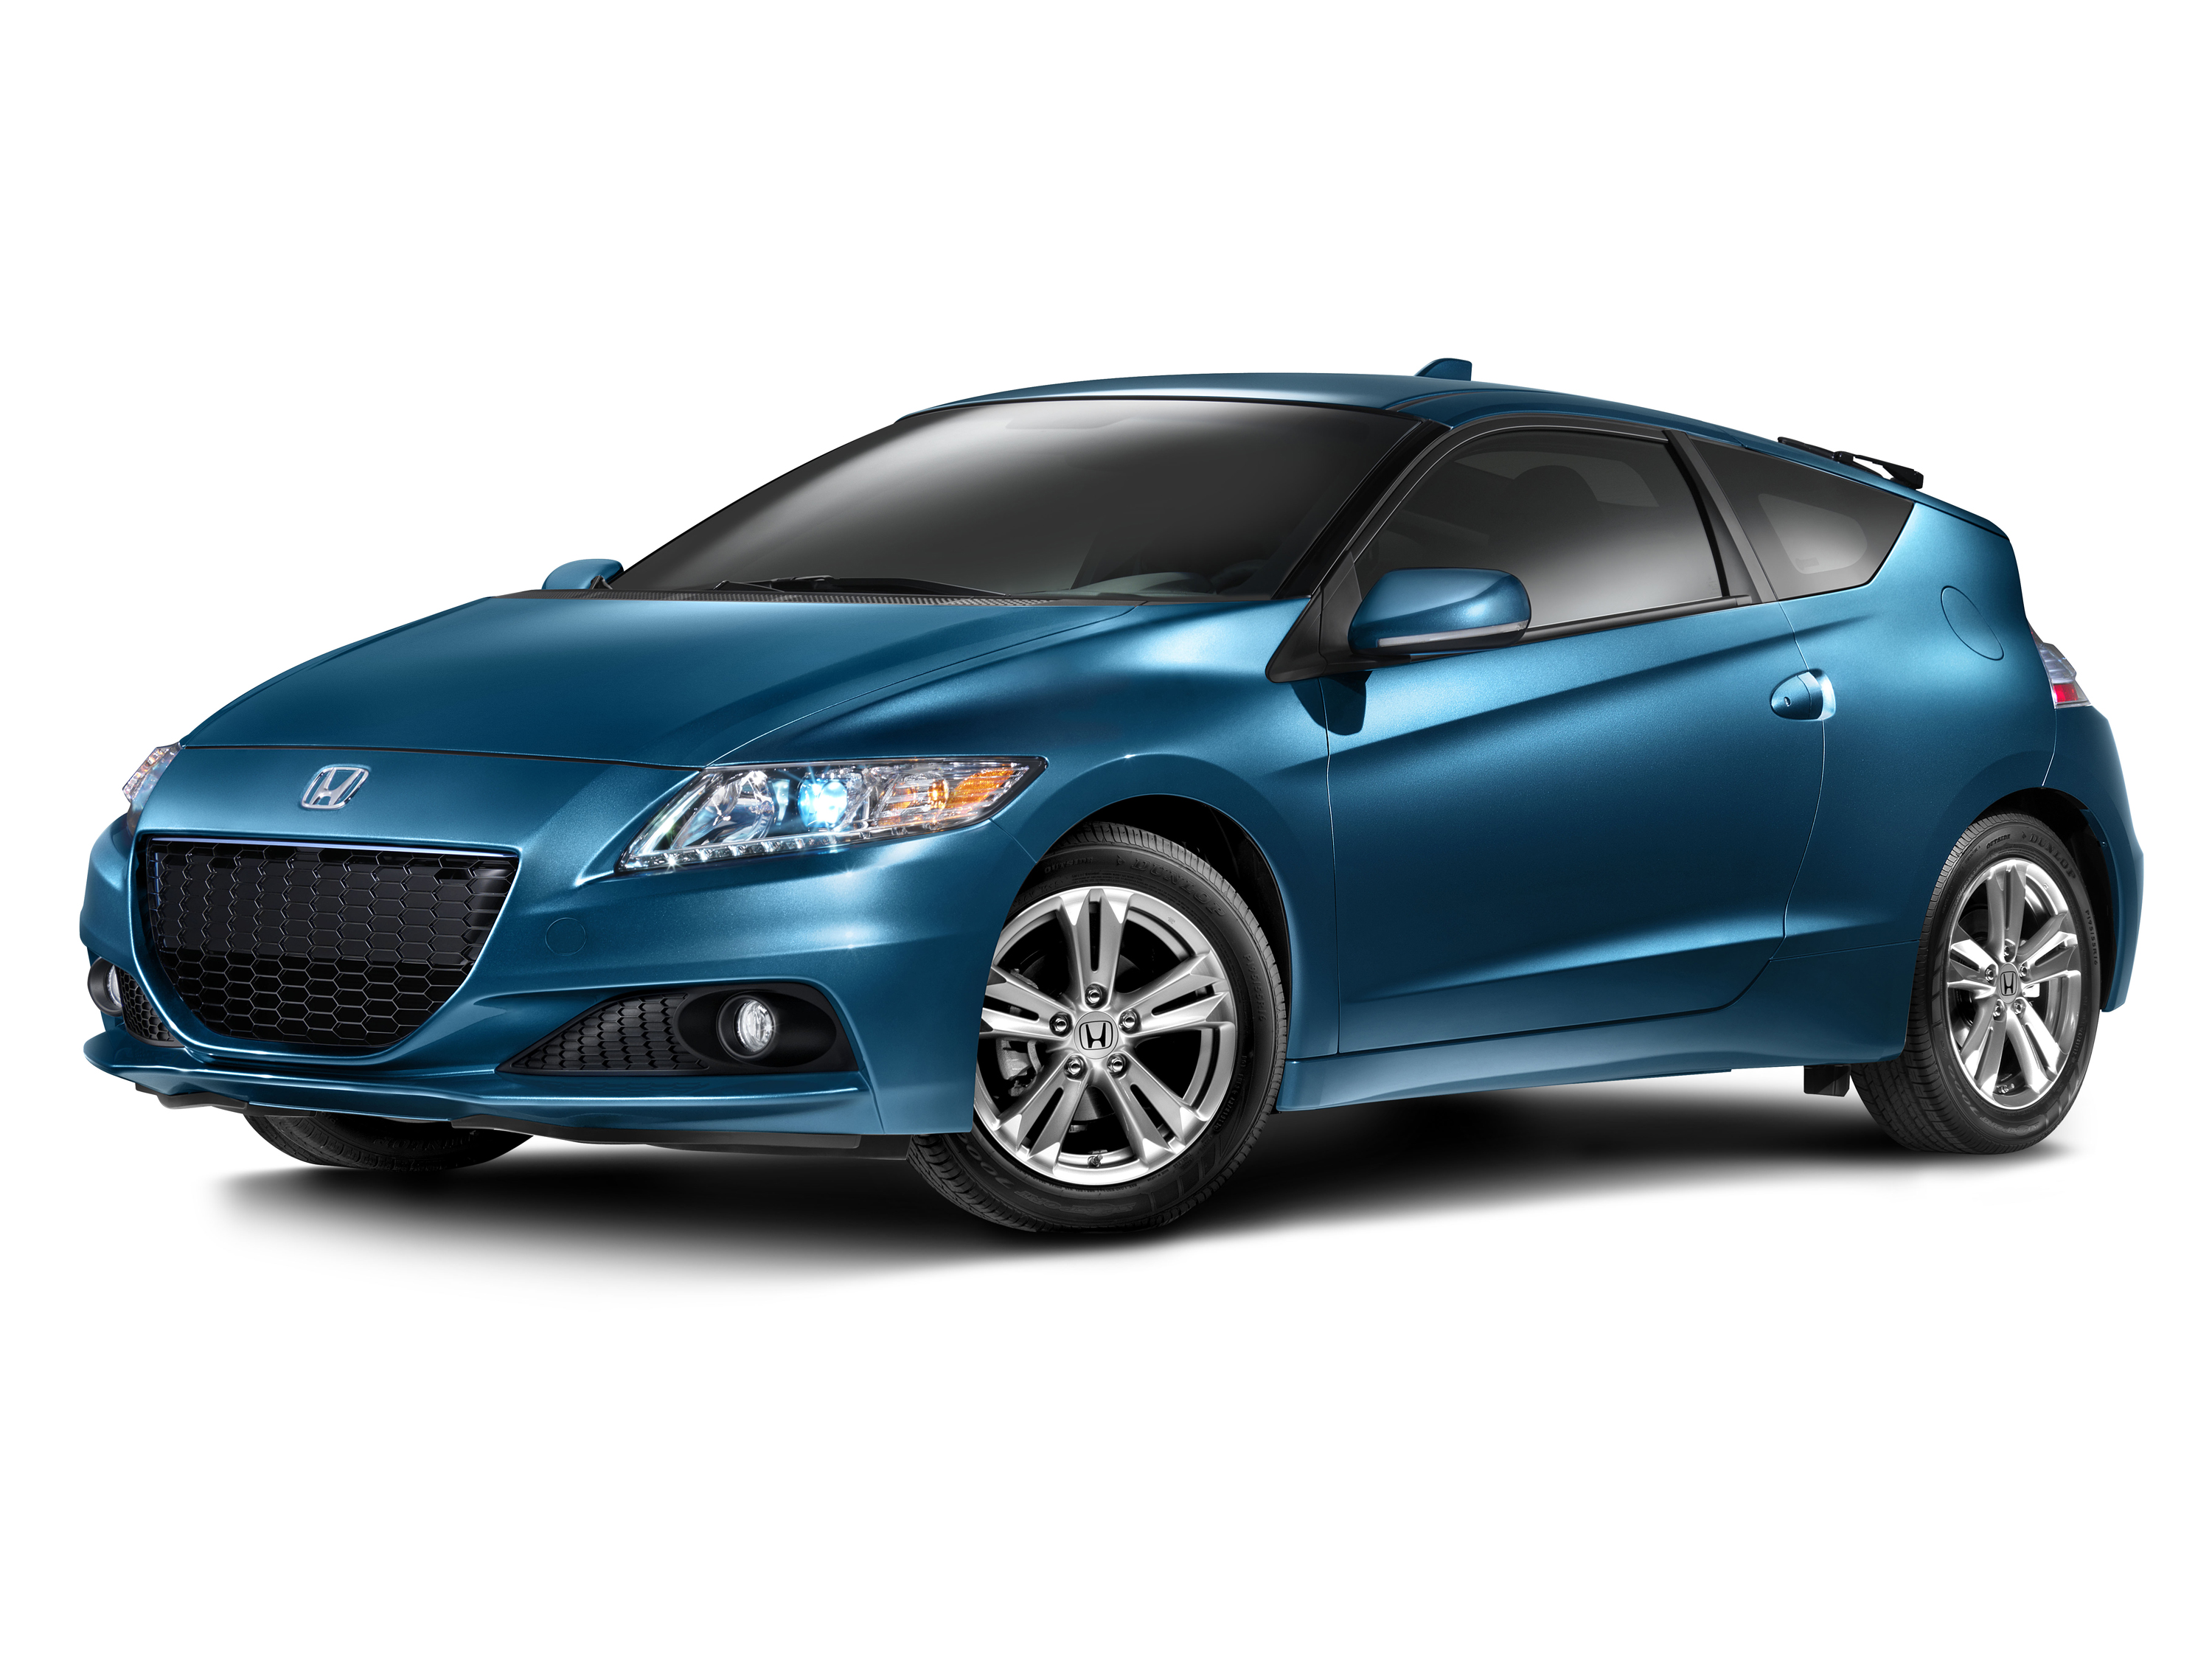 Honda crz photo - 8